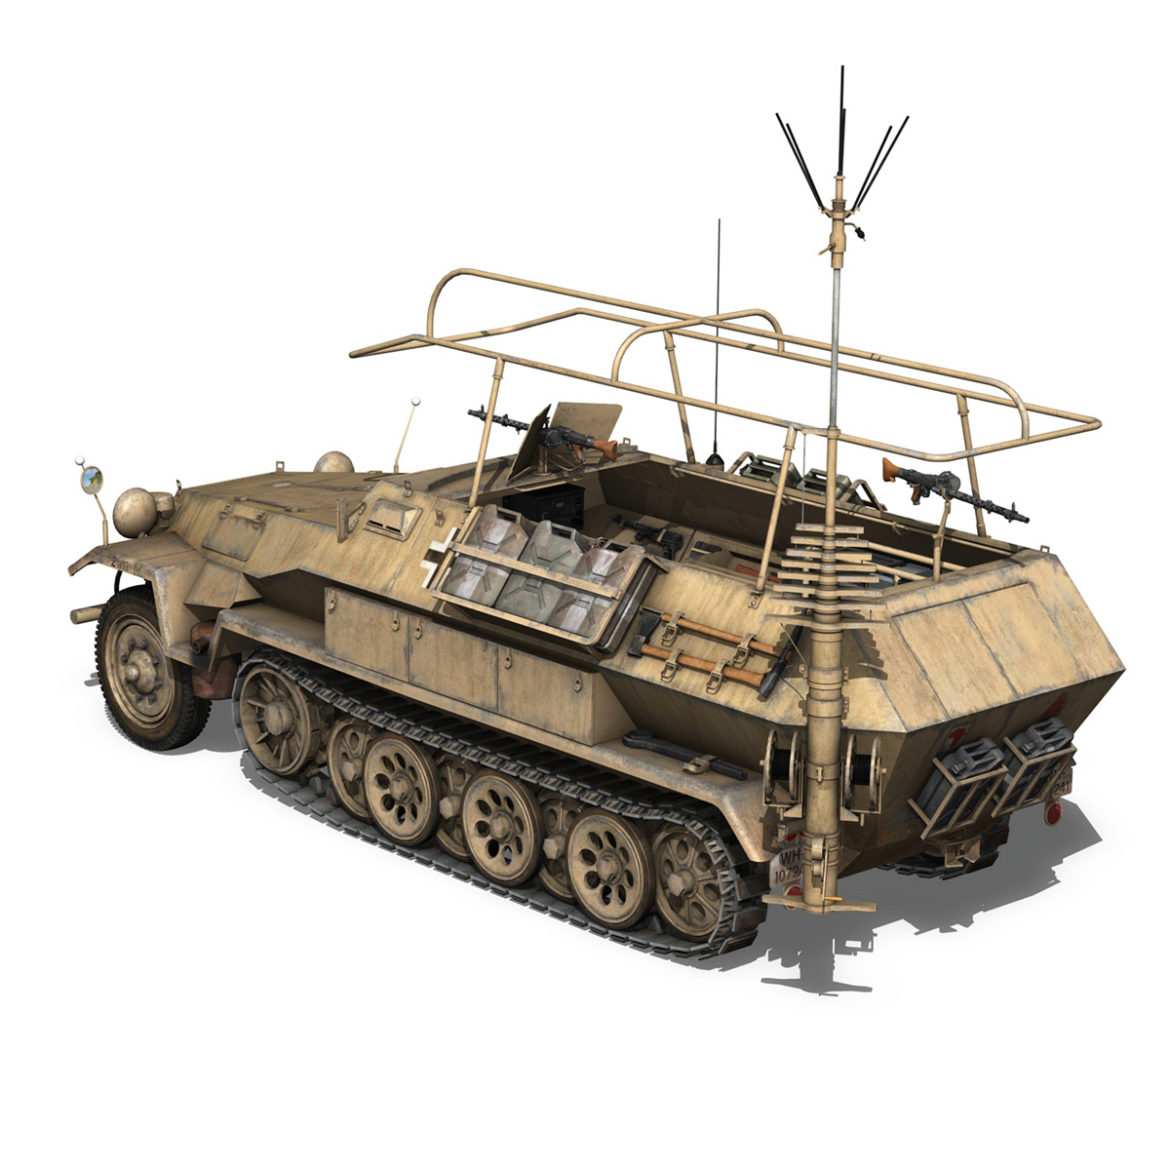 sdkfz 251 ausf.b – communications vehicle – 15pd 3d model 3ds fbx lwo lw lws obj c4d 305989